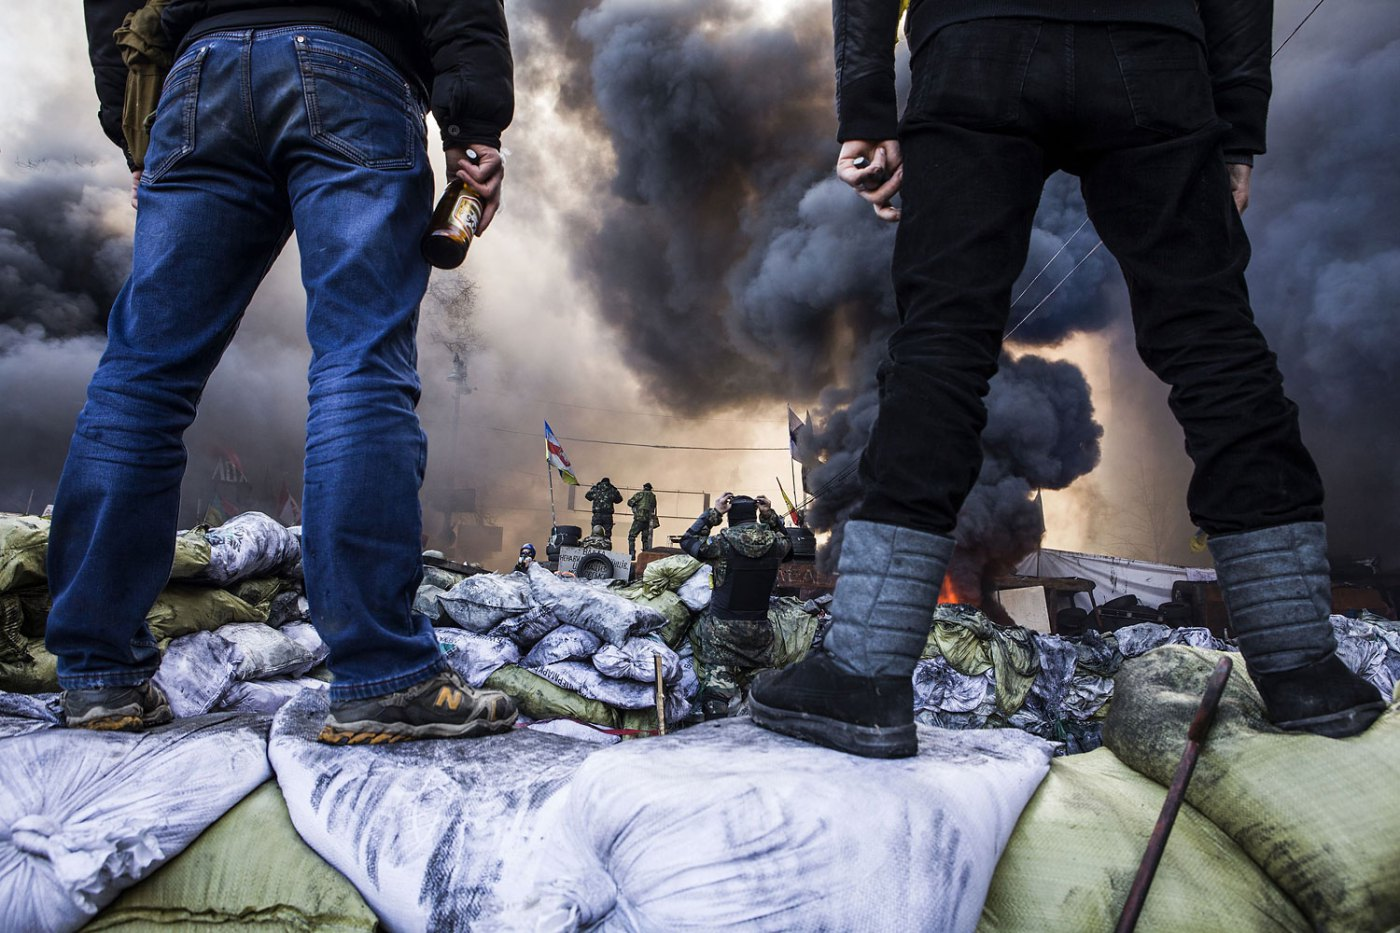 Anti-government demonstrators stand on barricades during clashes with riot police, Feb. 18, 2014.